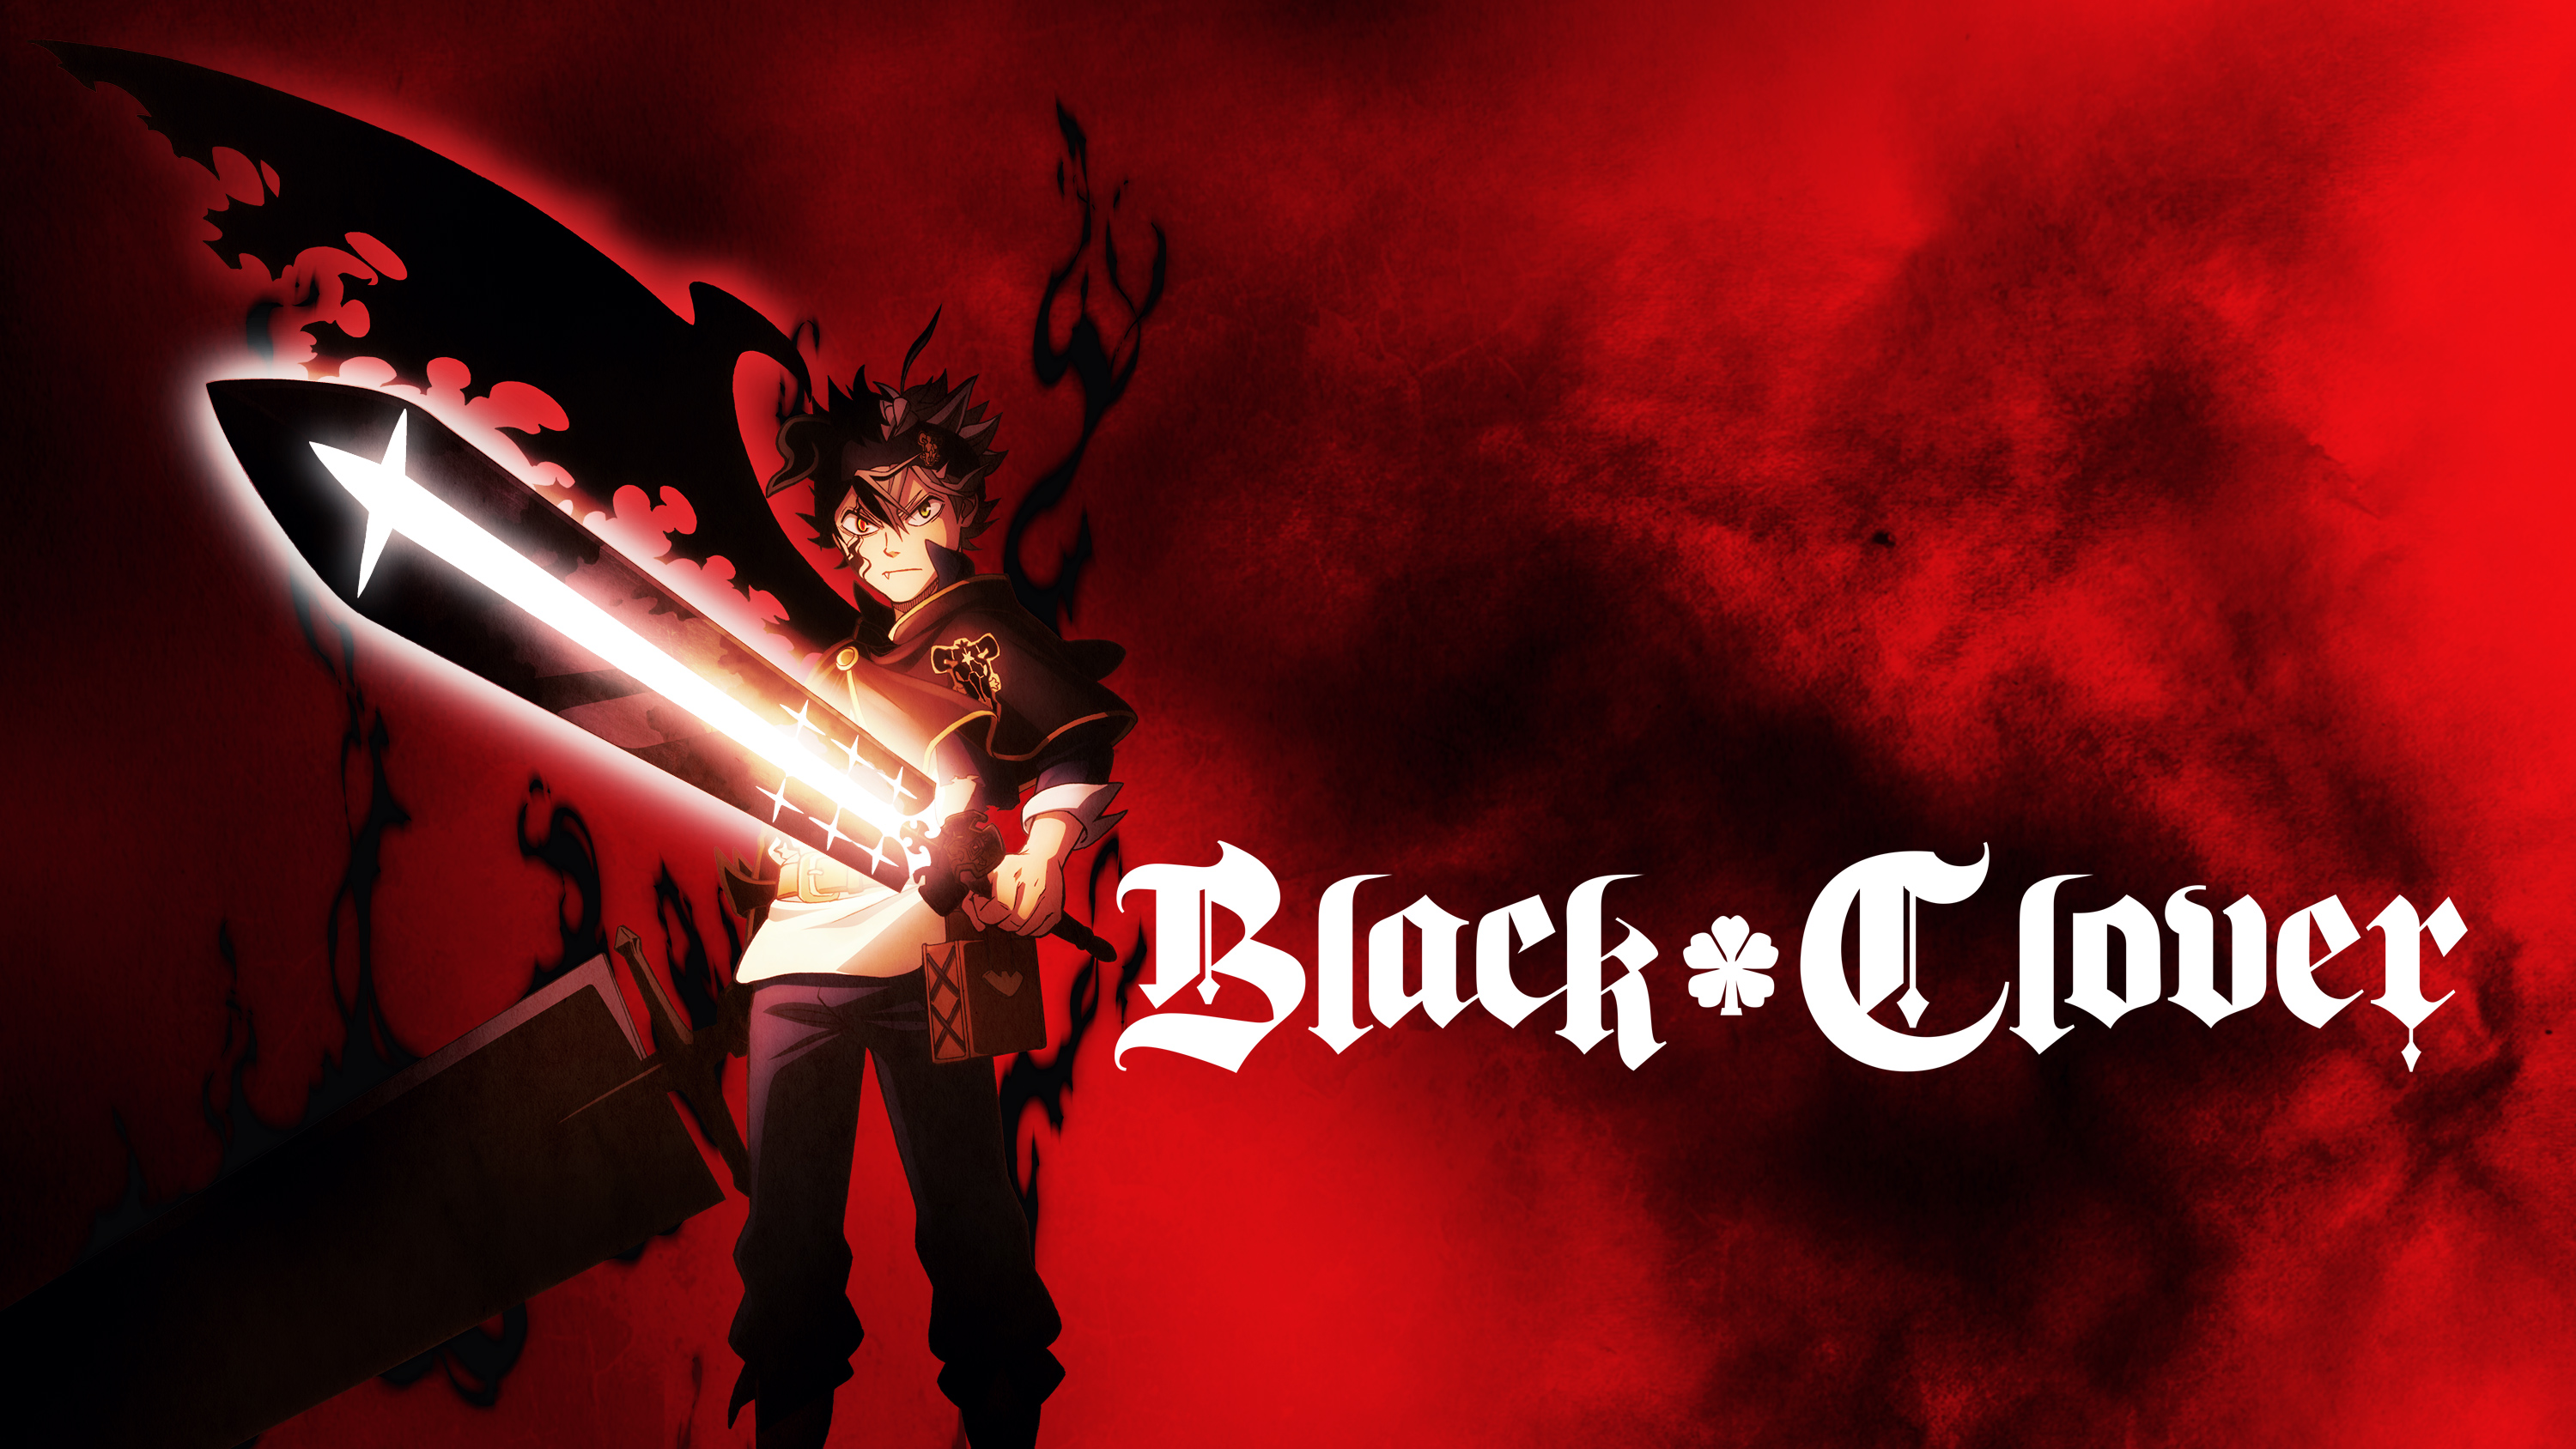 Search free spade kingdom wallpapers on zedge and personalize your phone to suit you. Black Clover Chapter 234 Release Date, Plot Predictions ...